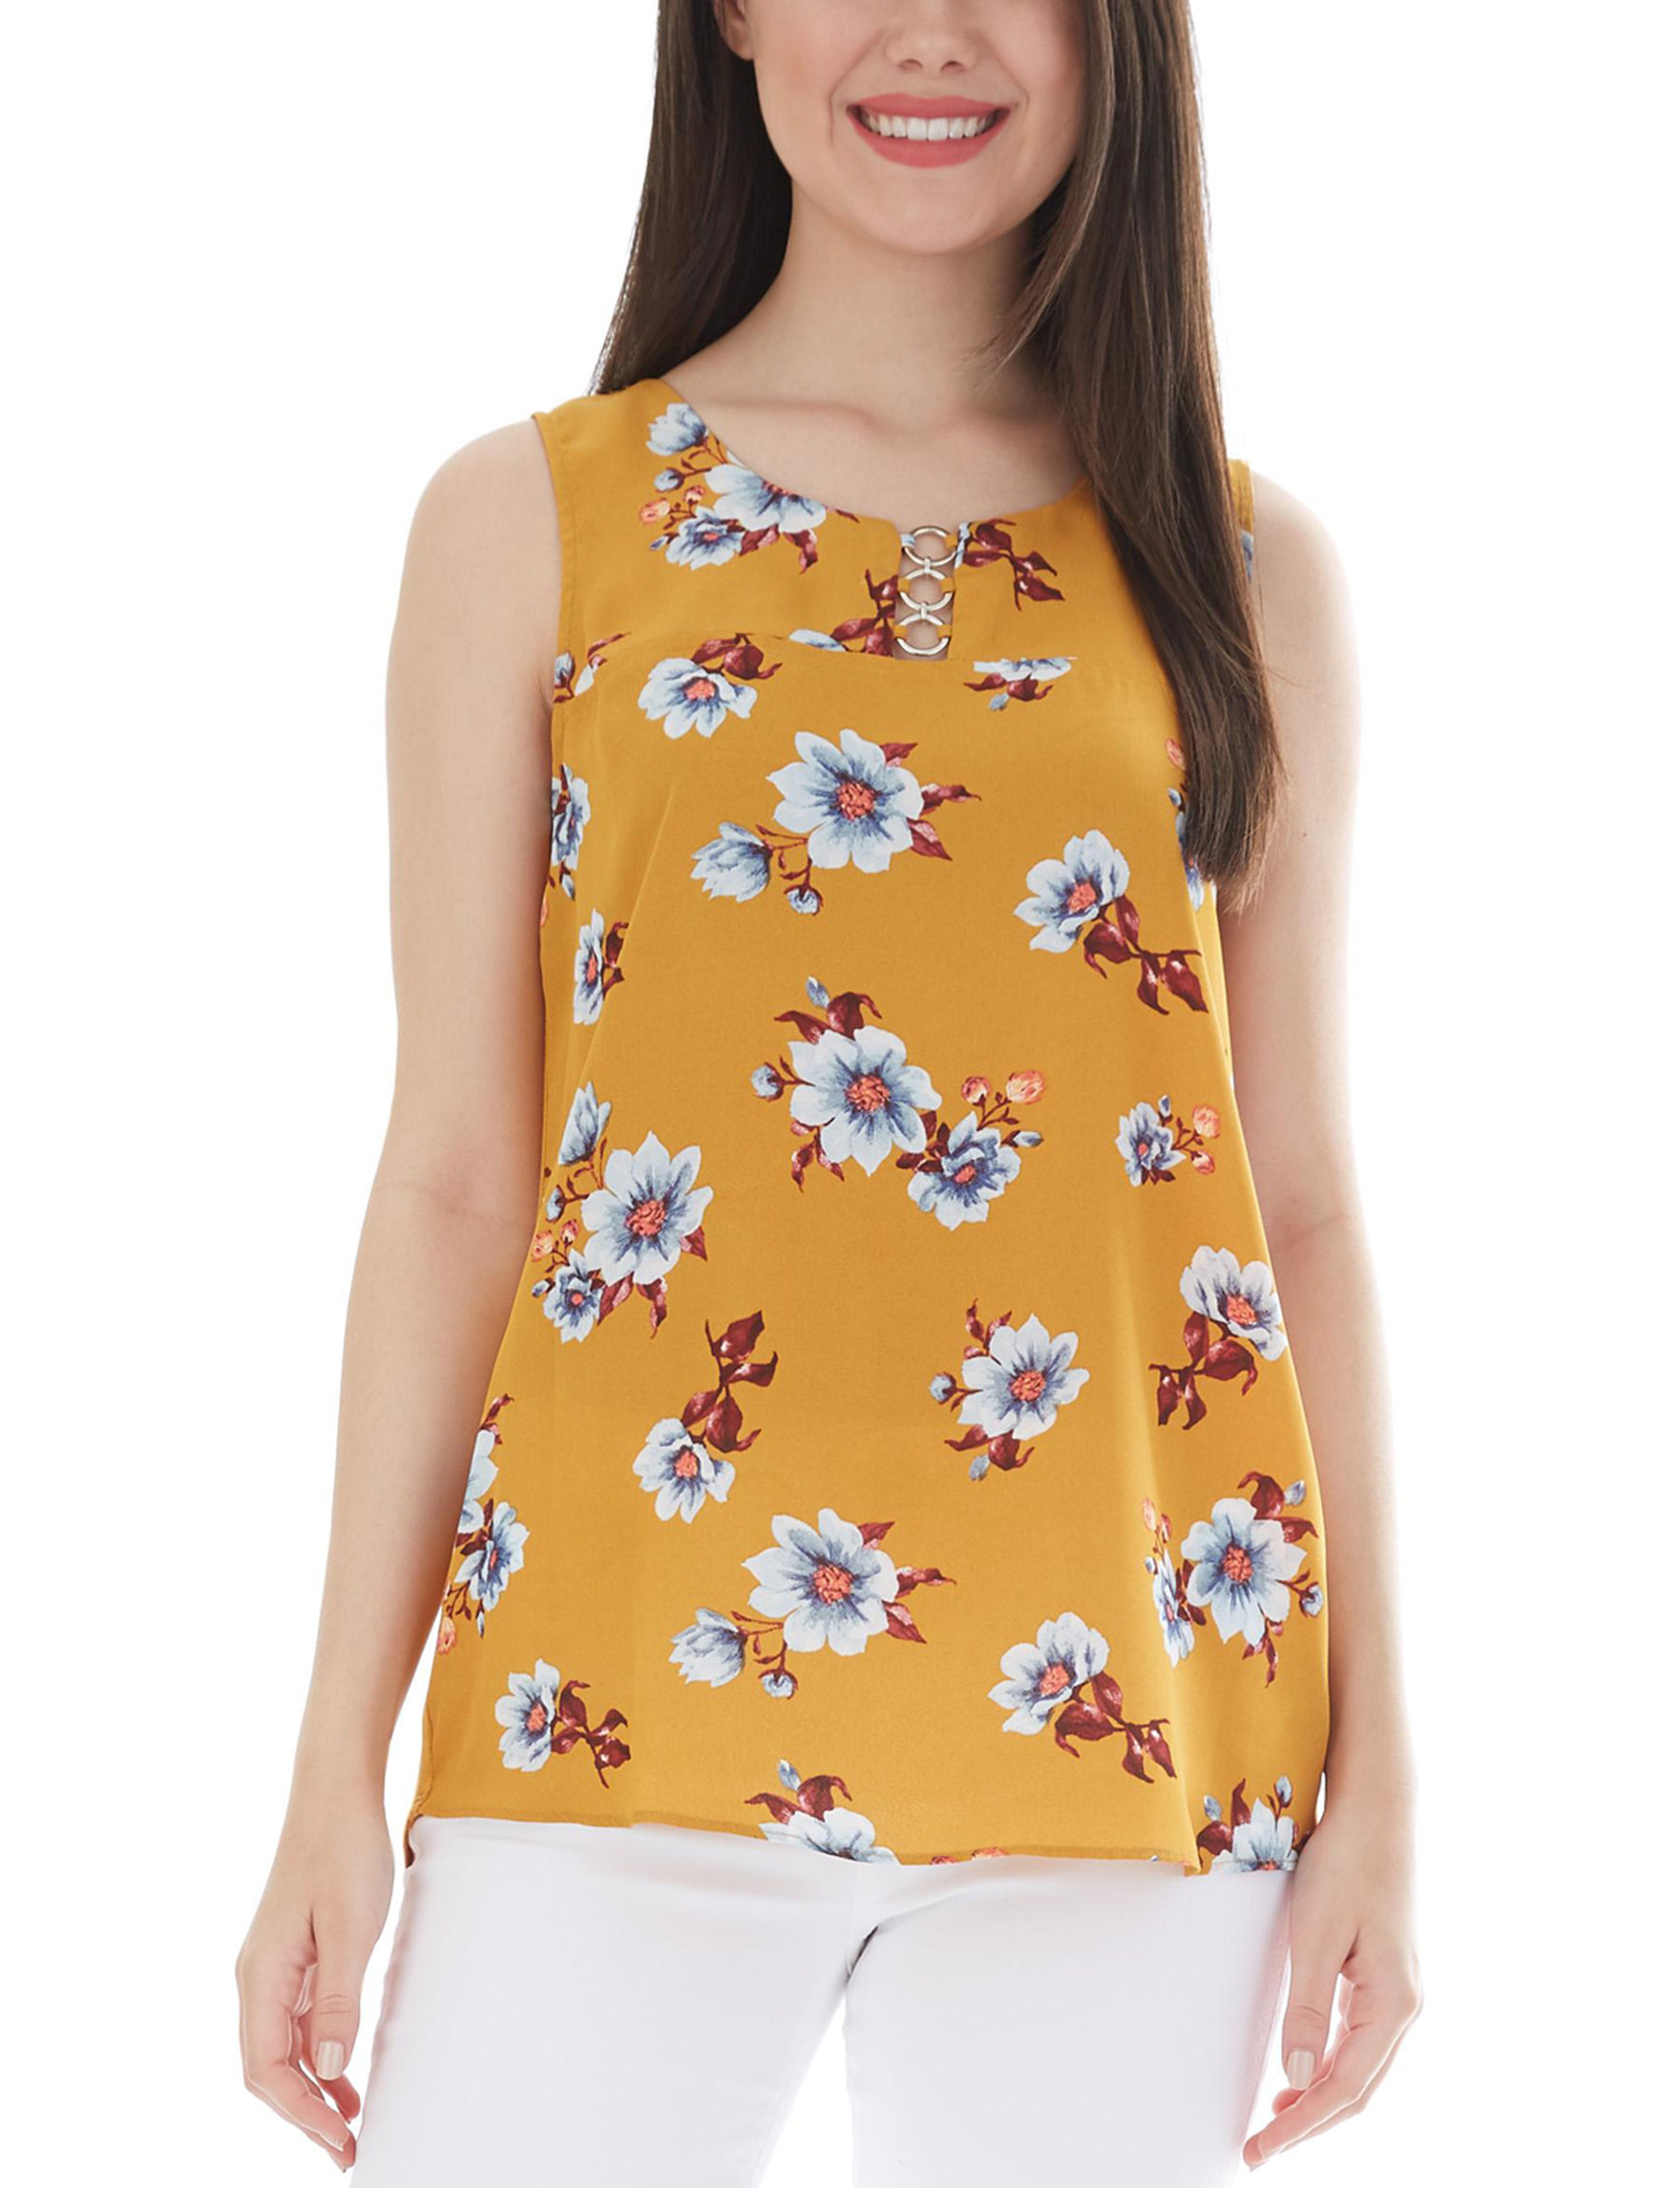 A. Byer Yellow Floral Shirts & Blouses Tees & Tanks